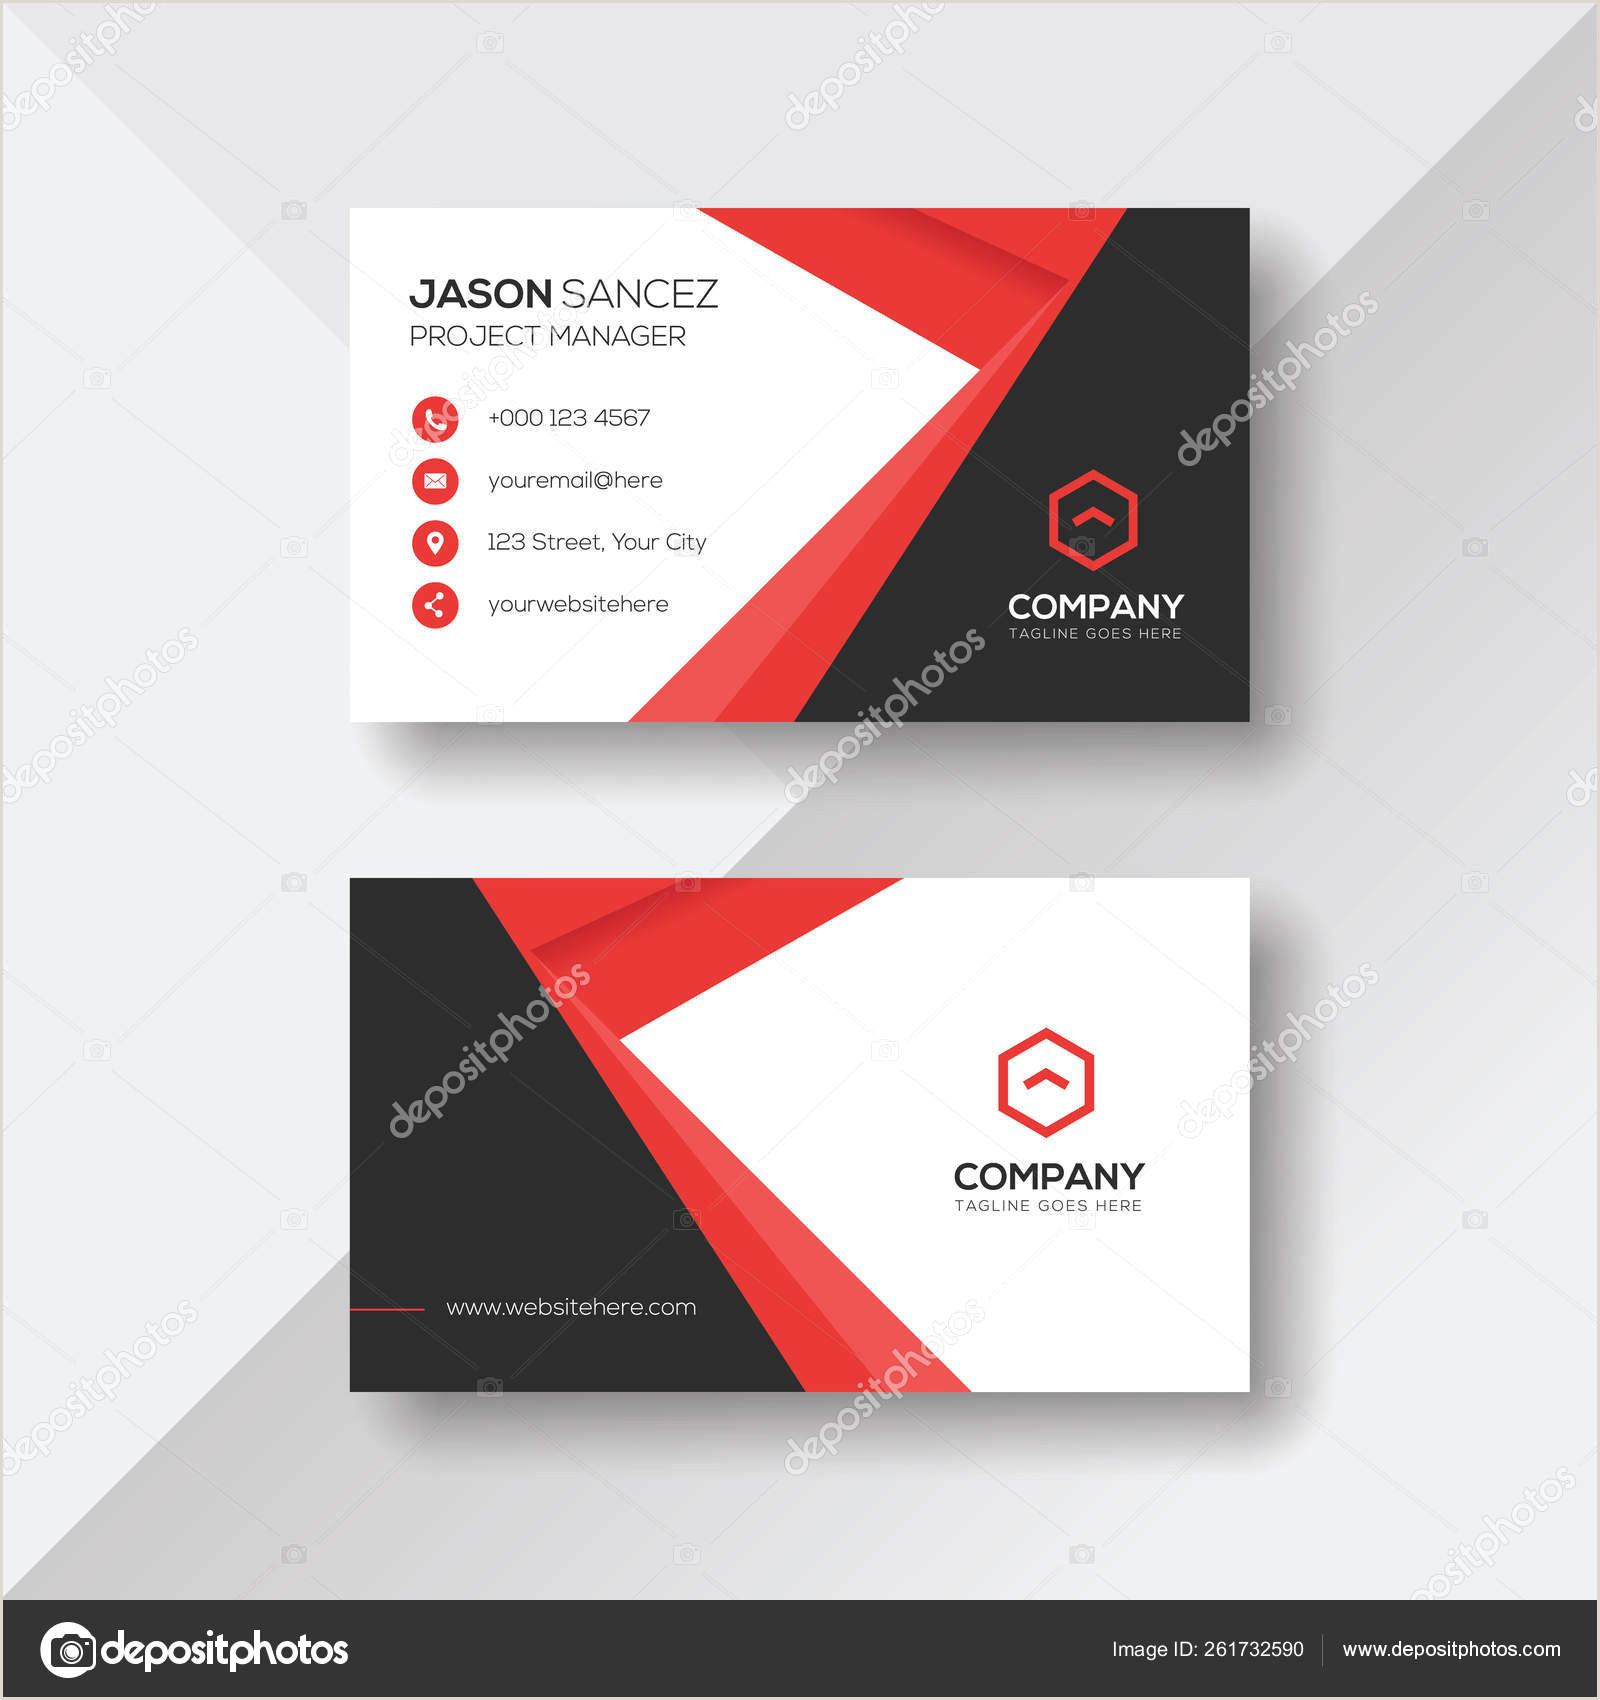 Unique Business Cards' Professional Modern Business Card With Red Details